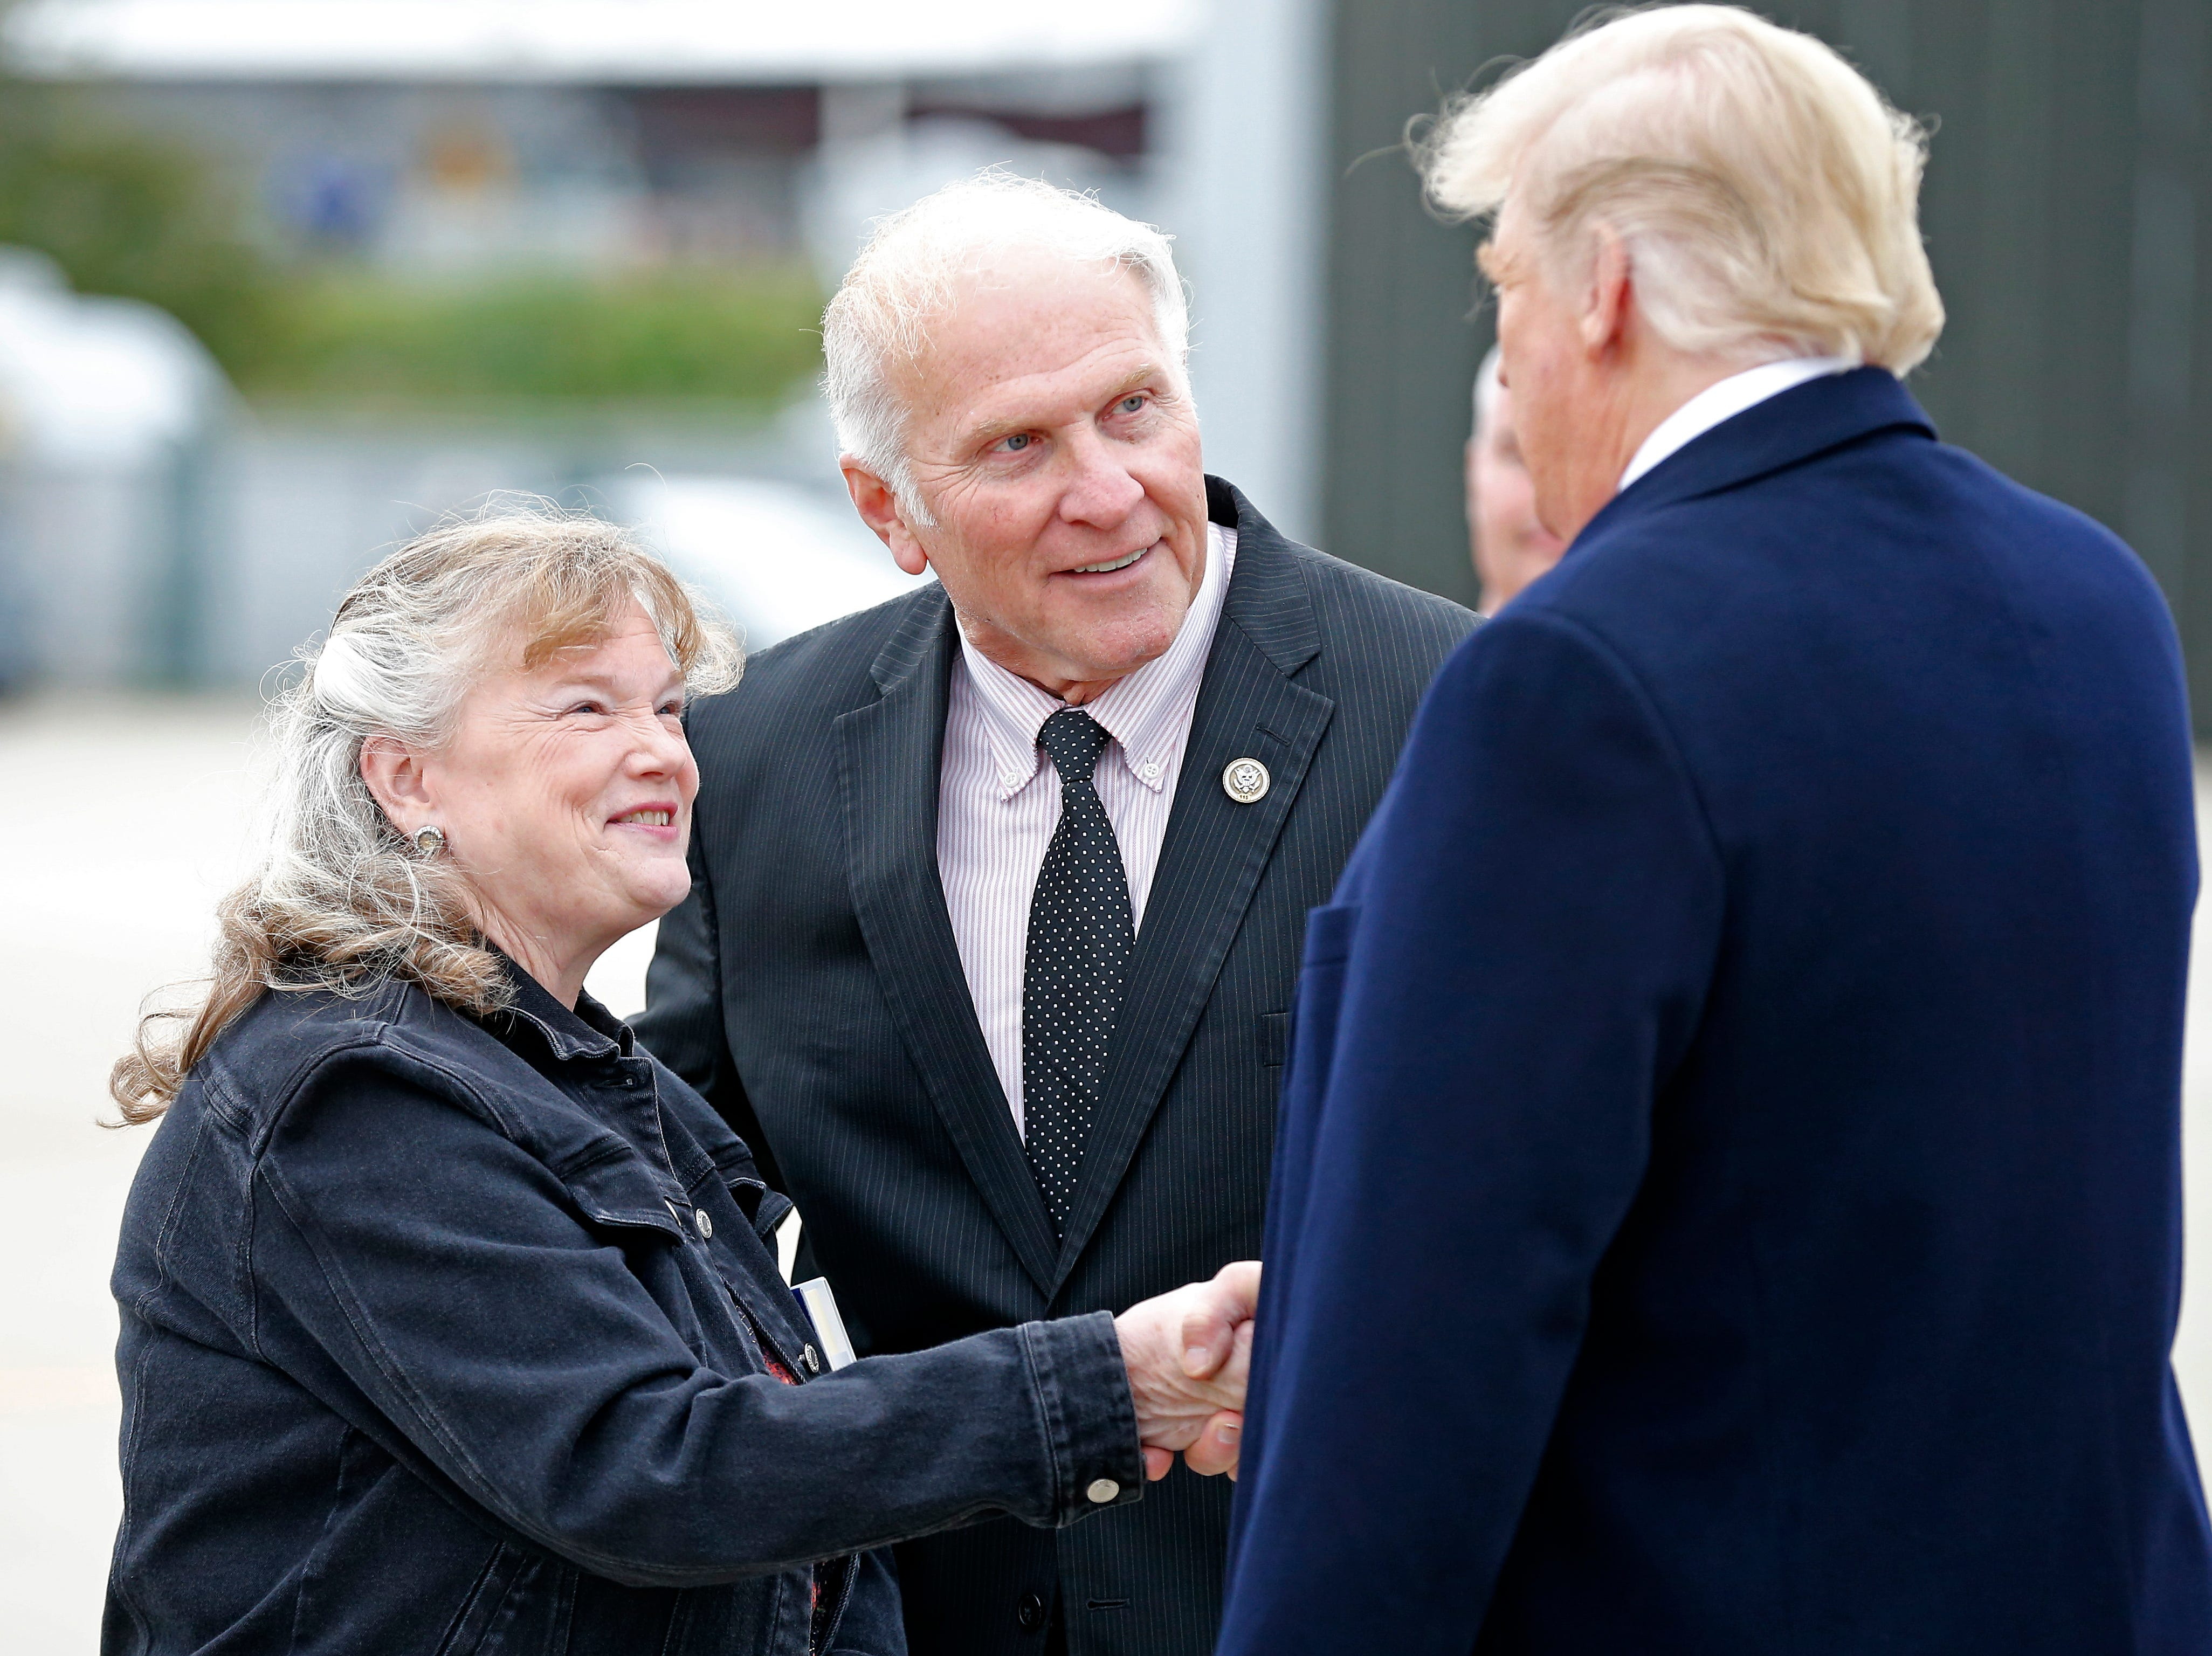 Ohio District 1 Congressman Steve Chabot and his wife Donna shake hands with President Donald Trump after he exits Air Force One at Lunken Airport in Cincinnati on Friday, Oct. 12, 2018. President Trump visited the Cincinnati area for a MAGA Rally at the Warren County Fair Grounds in Lebanon, Ohio, Friday night.